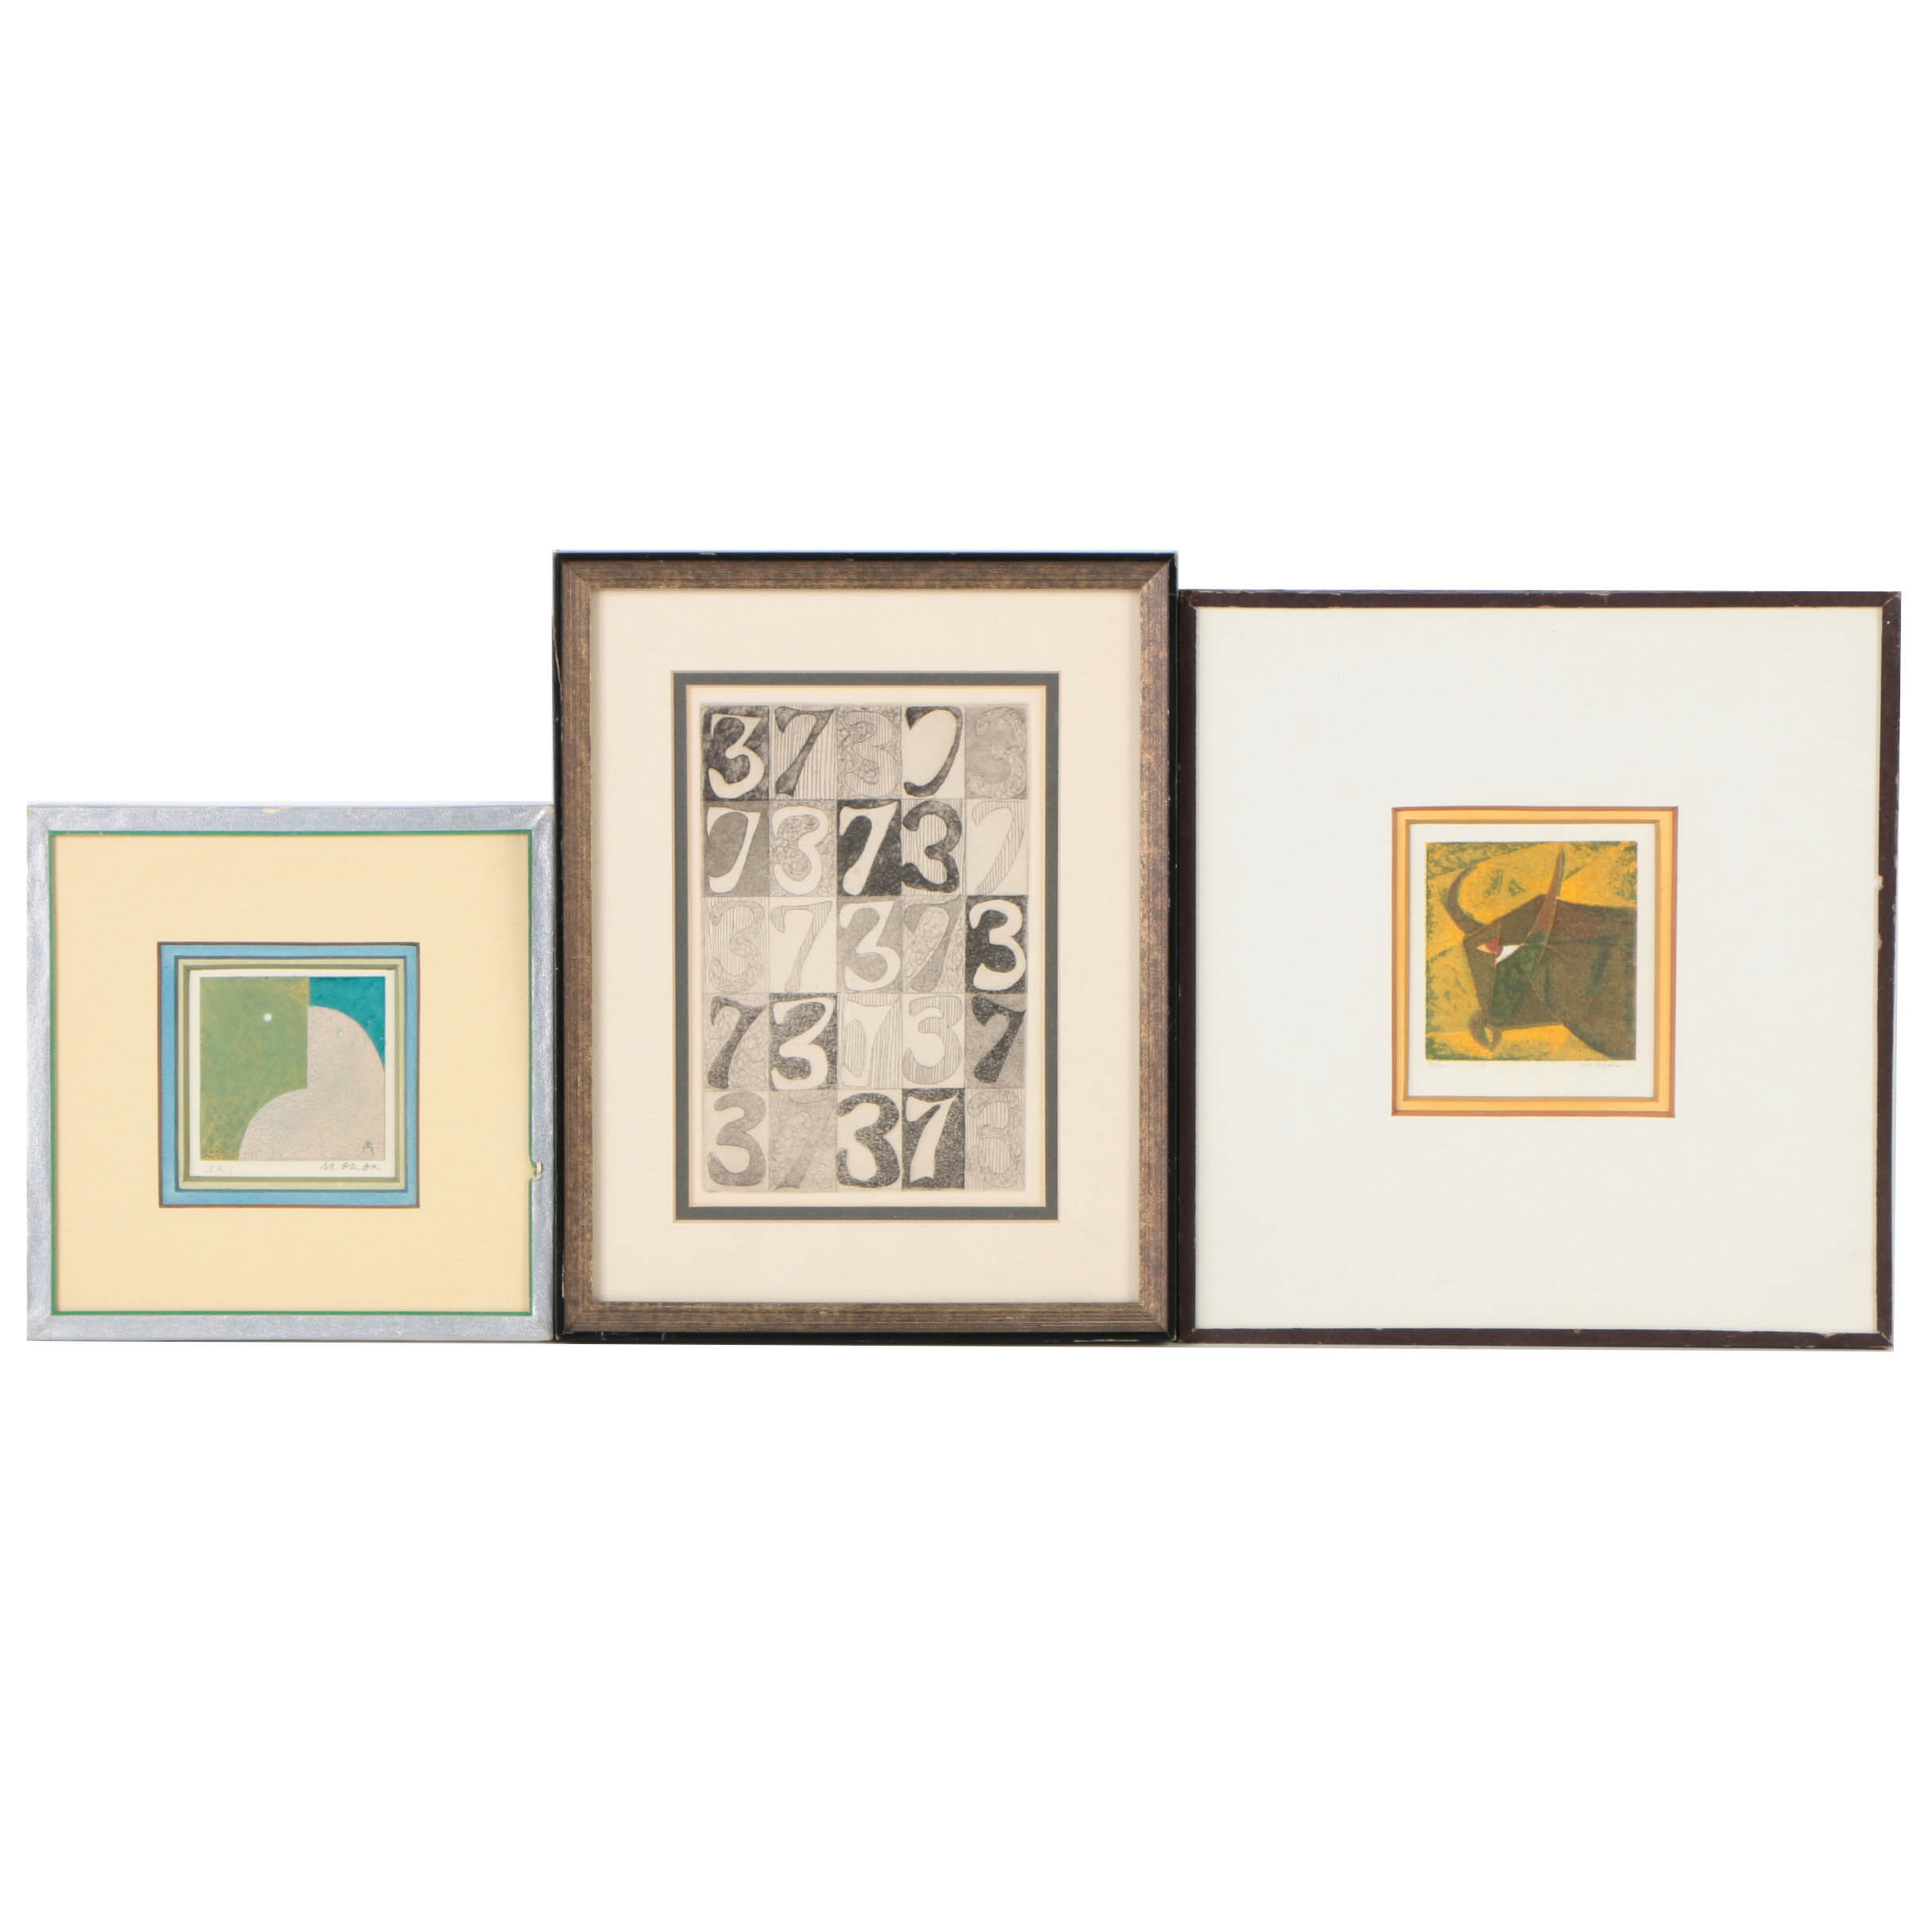 Collection of Two Limited Edition Serigraphs and One Aquatint Etching on Paper